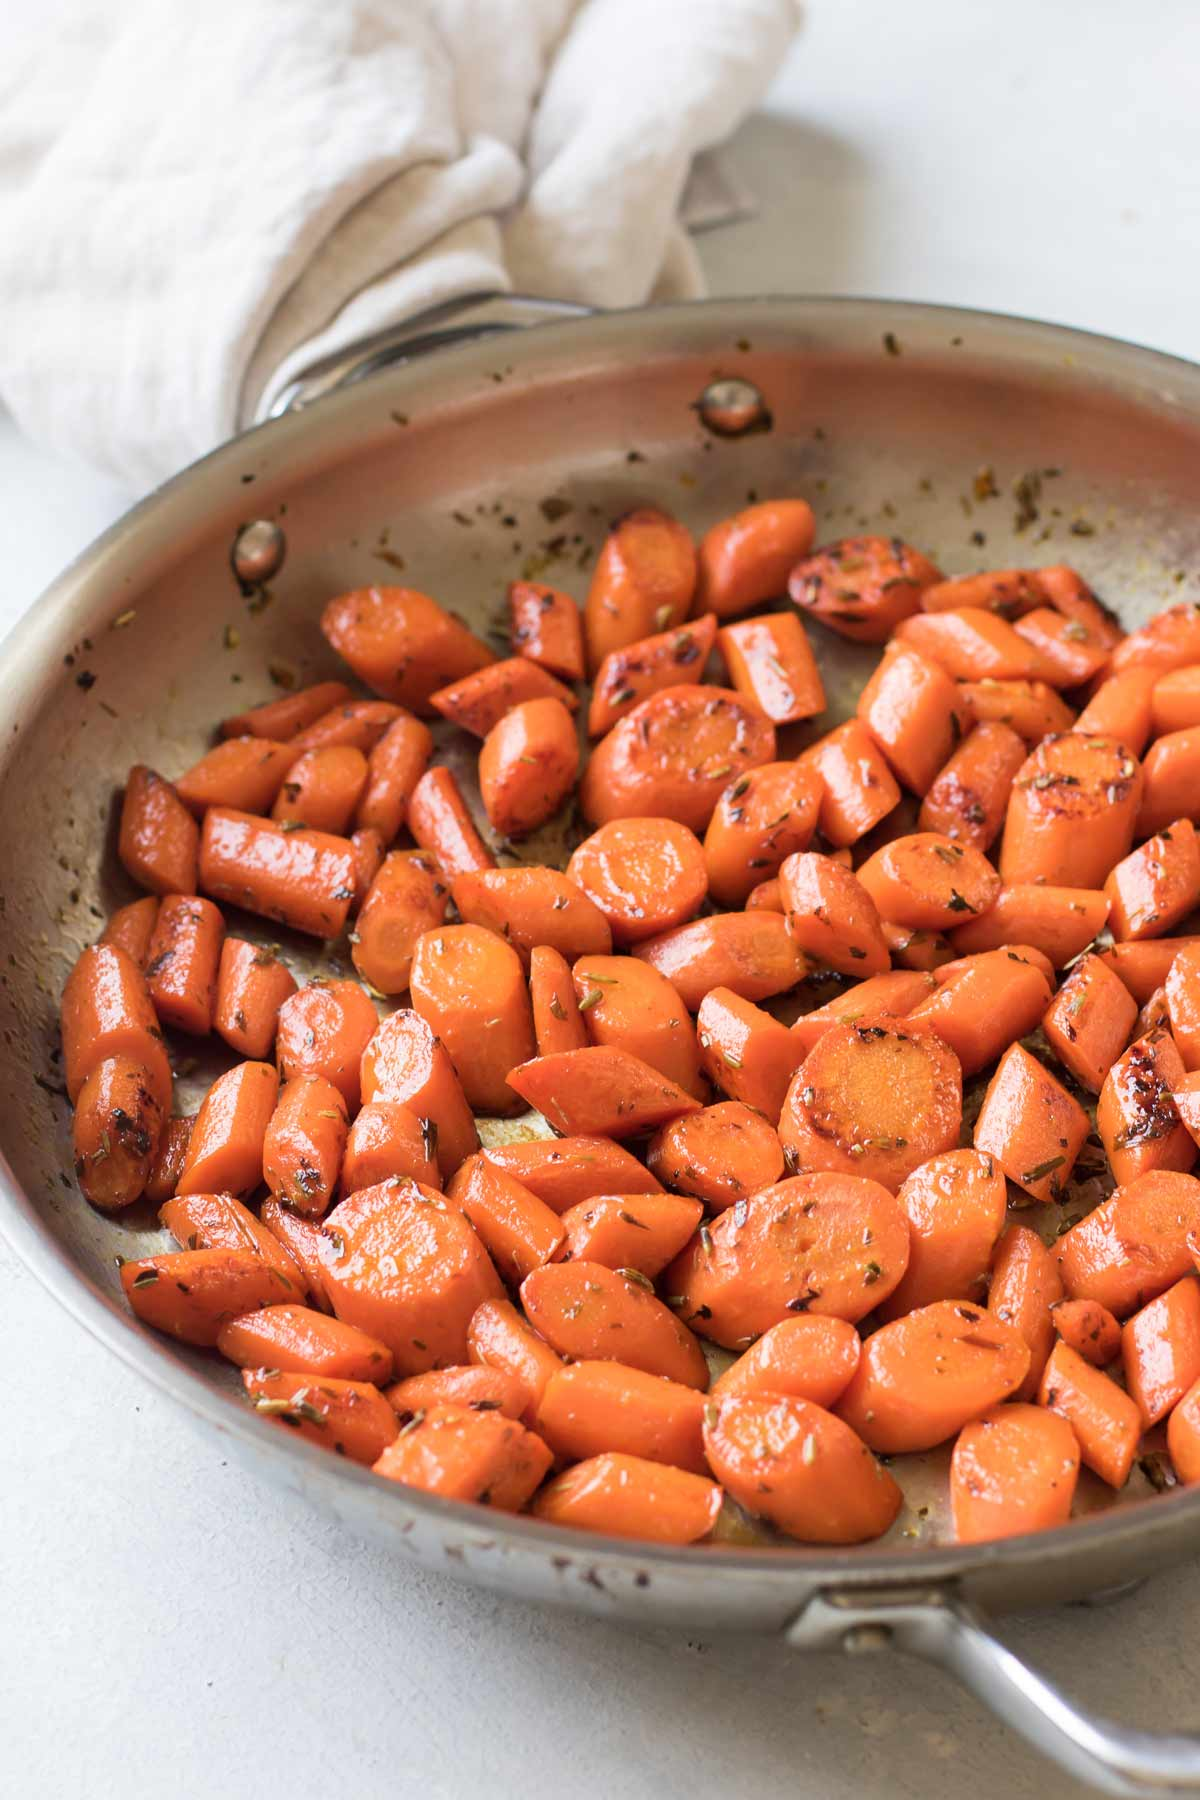 cooked carrots in a skillet.